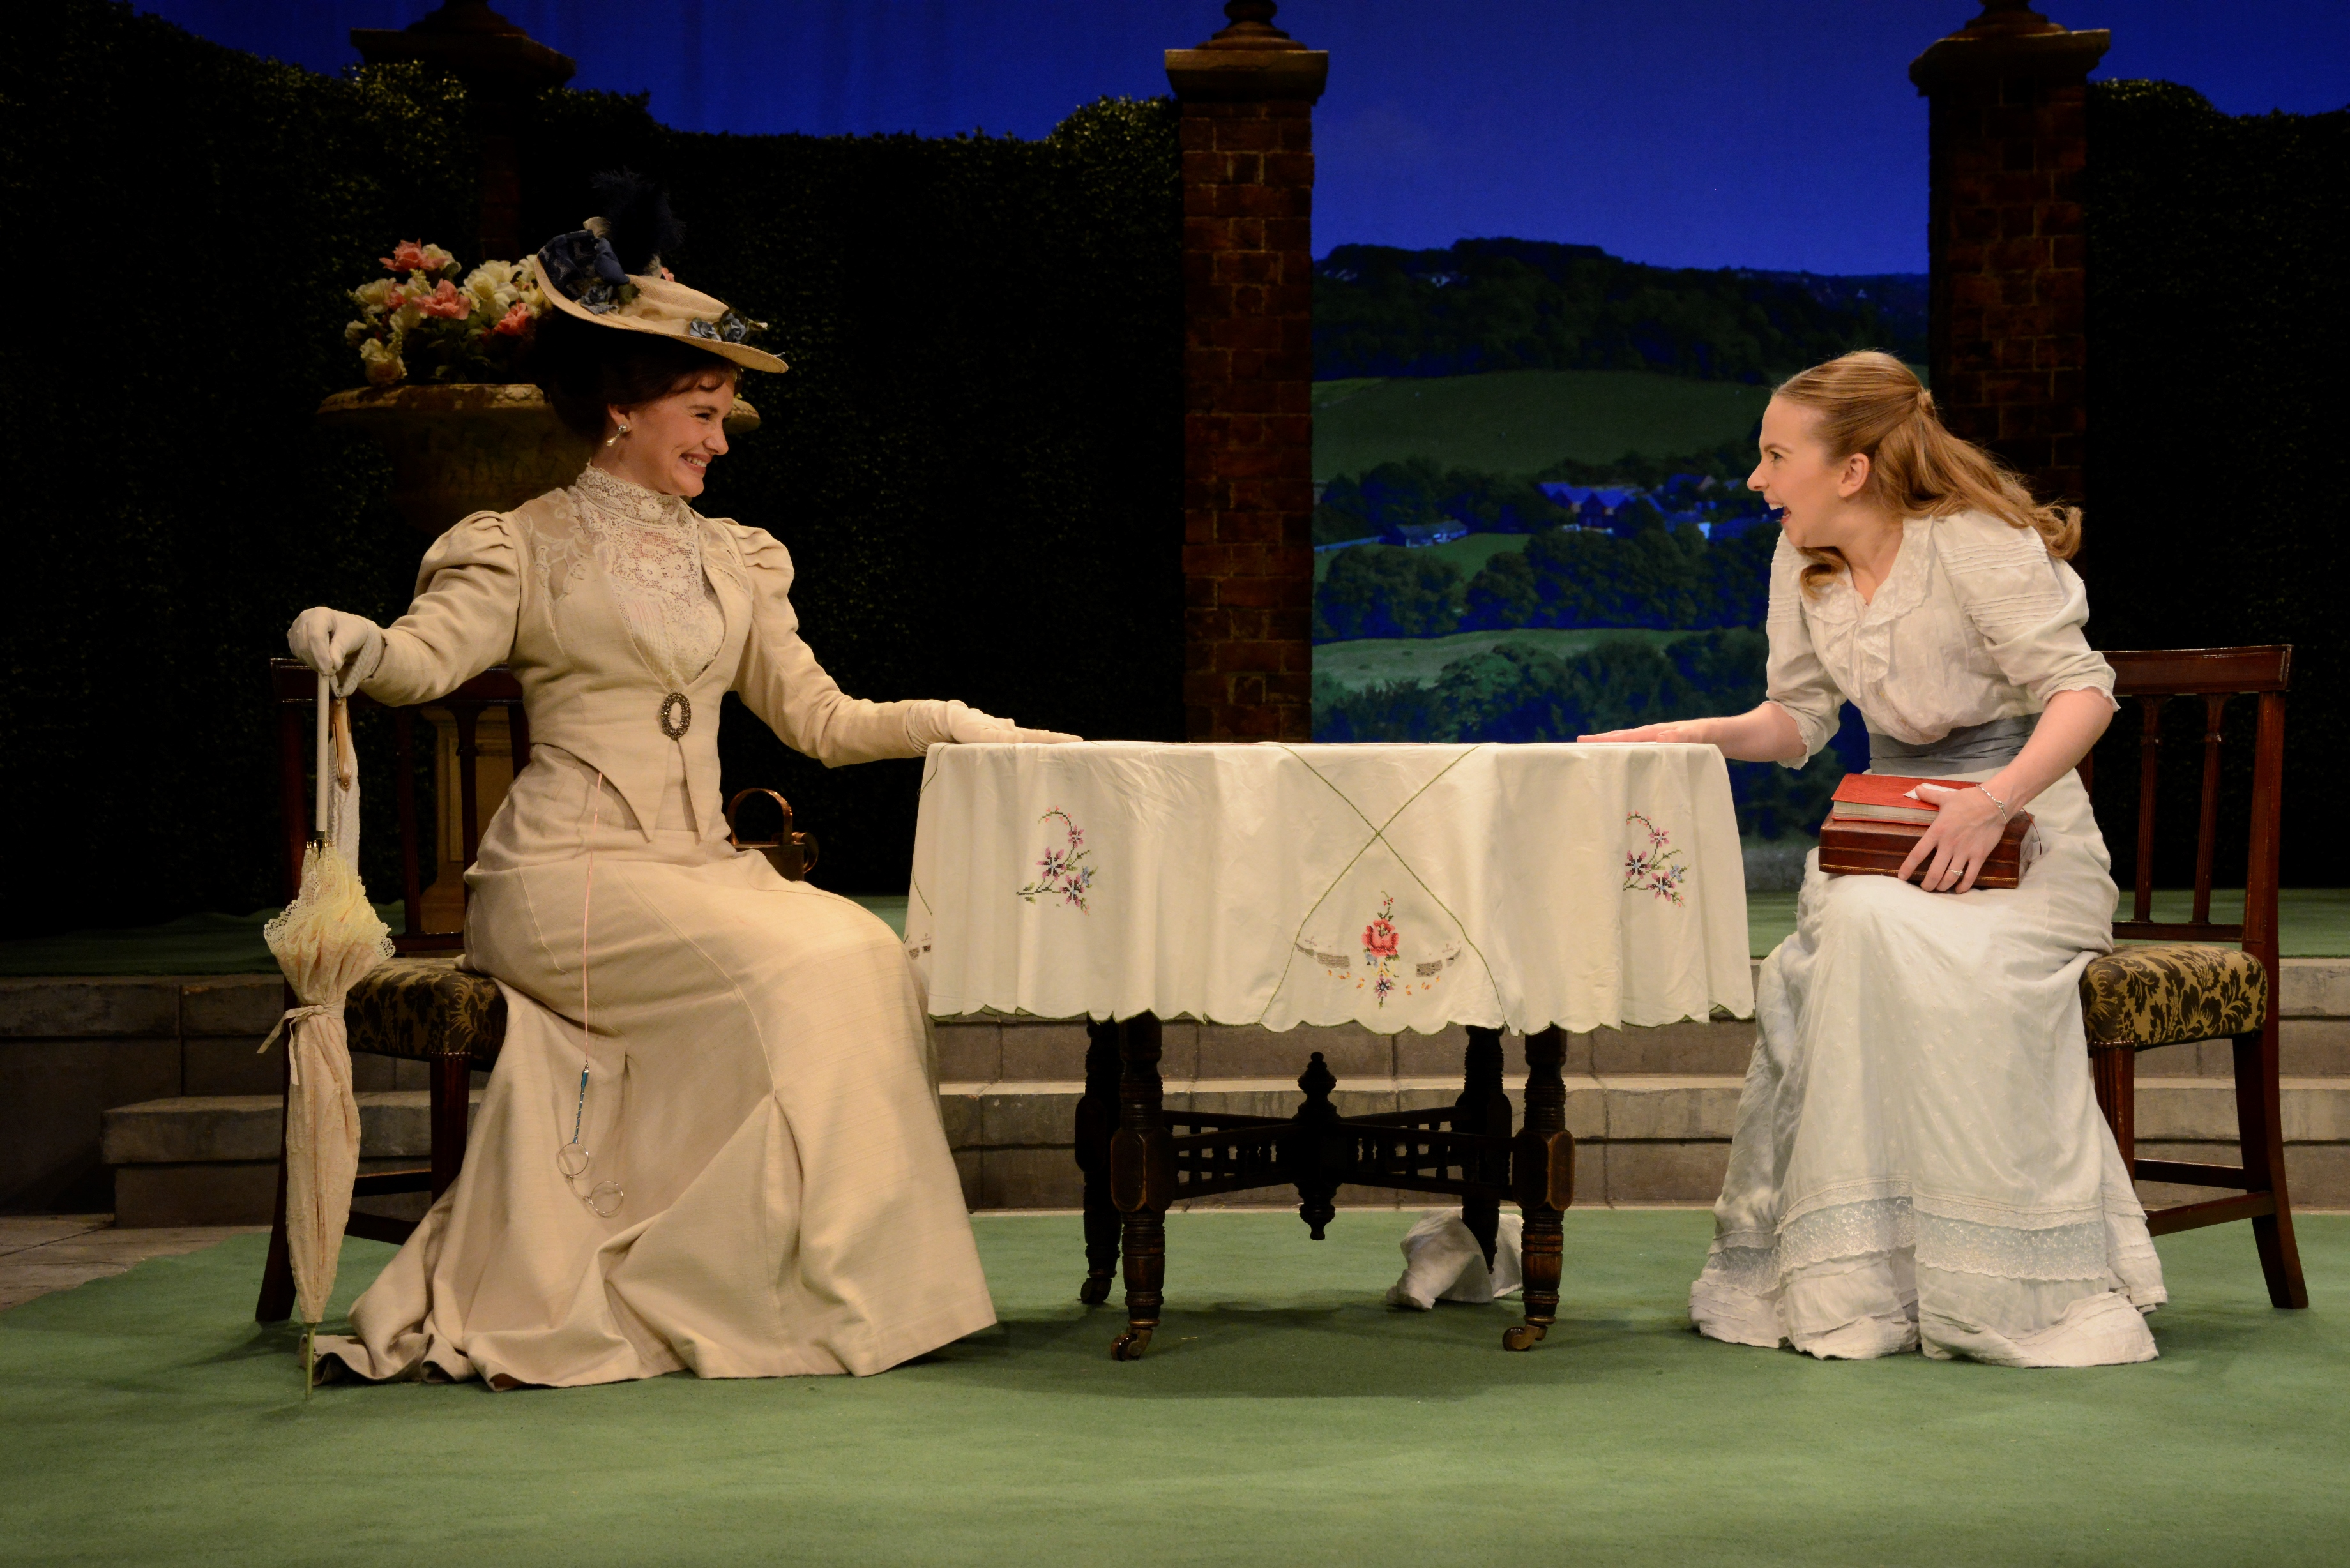 Theatre Preview: THE IMPORTANCE OF BEING EARNEST (Fathom Events / Vaudeville Theatre in London)